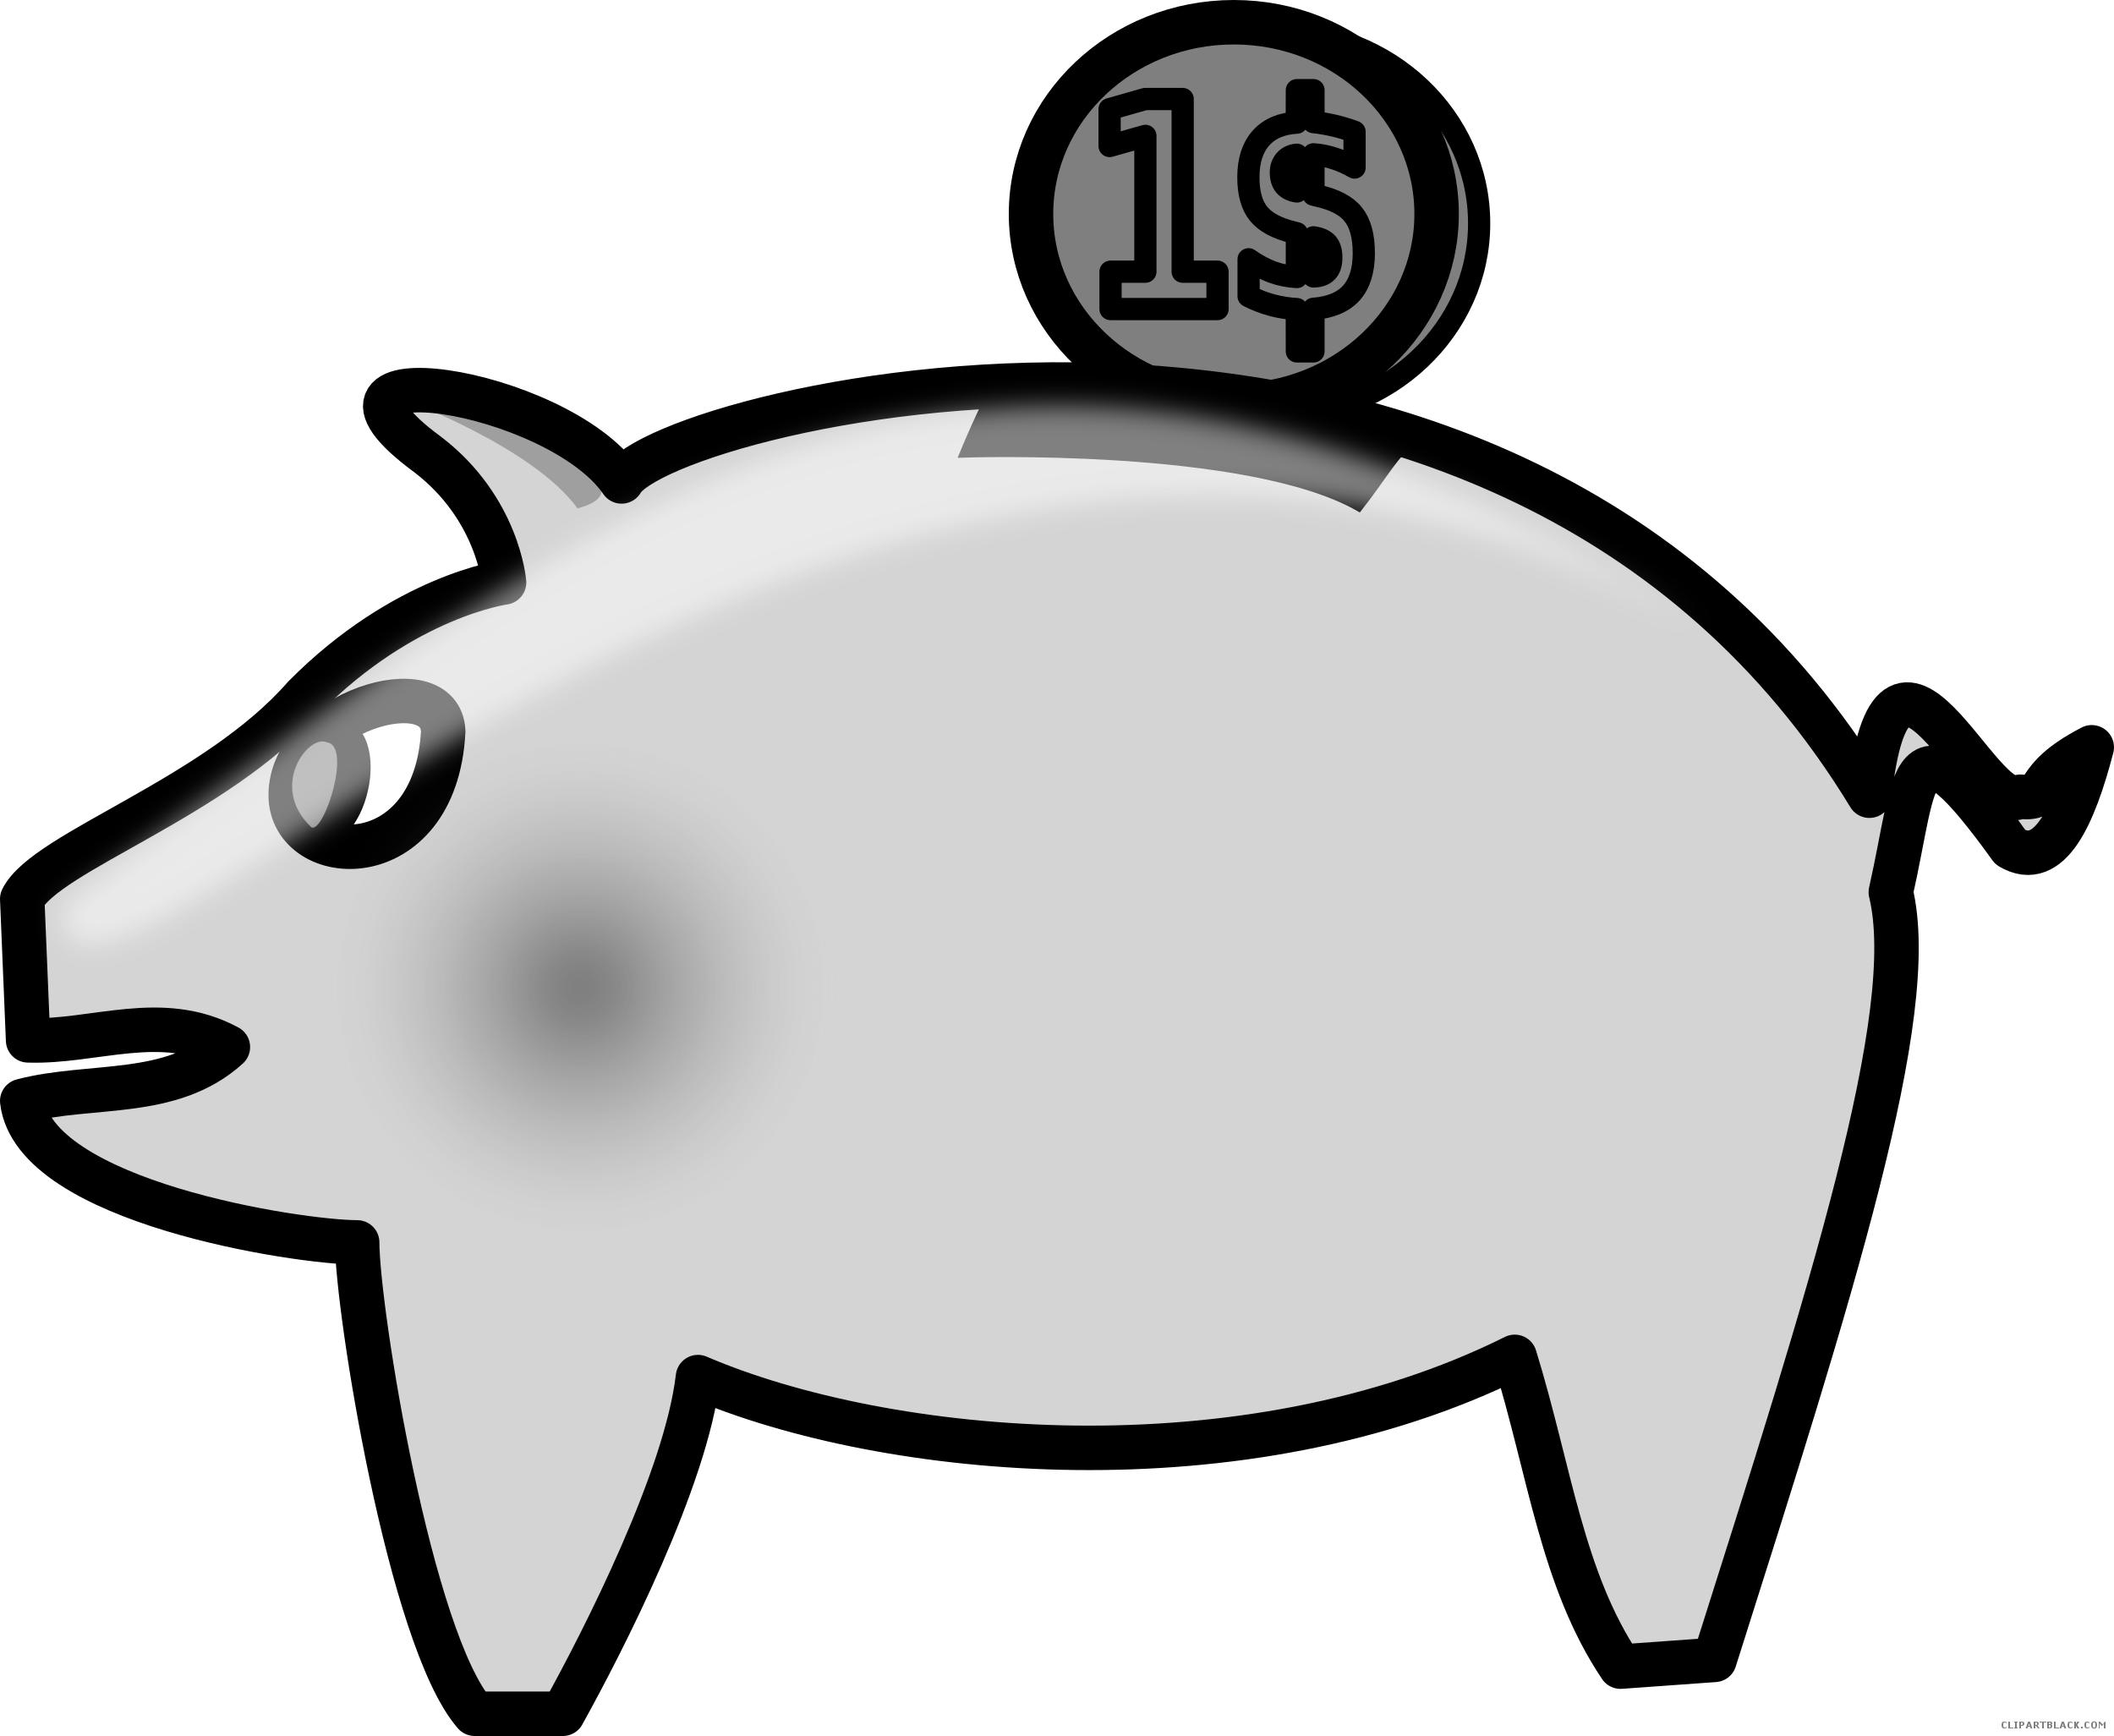 Free piggy bank clipart black and white jpg transparent Piggy Bank Clipart - ClipartBlack.com jpg transparent